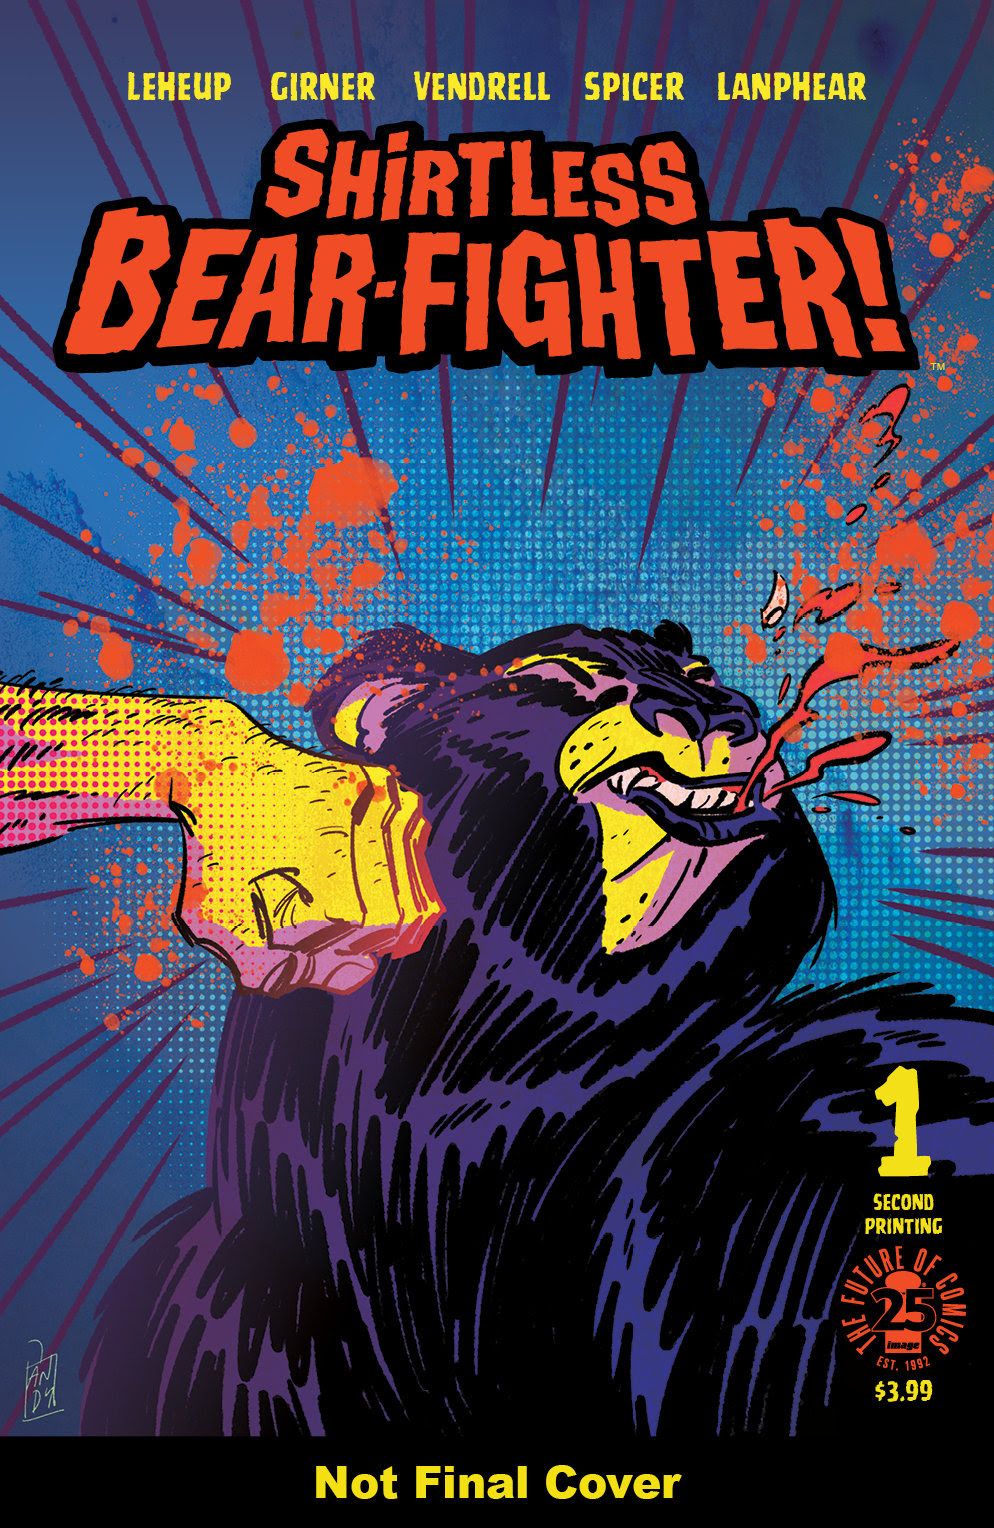 Shirtless Bear-Fighter